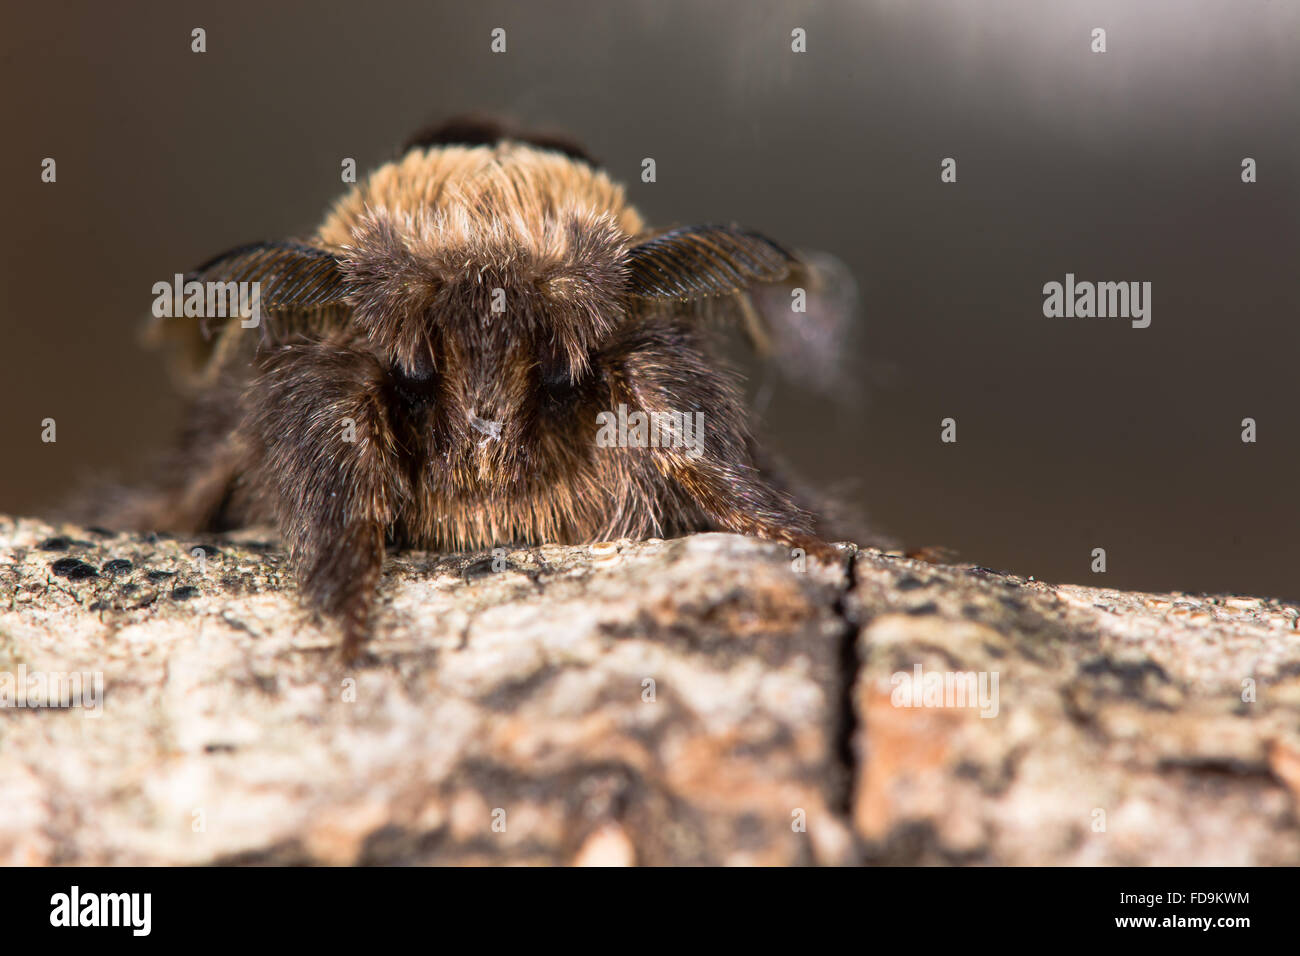 December moth (Poecilocampa populi) head on. A male moth found in winter, in the family Lasiocampidae - Stock Image